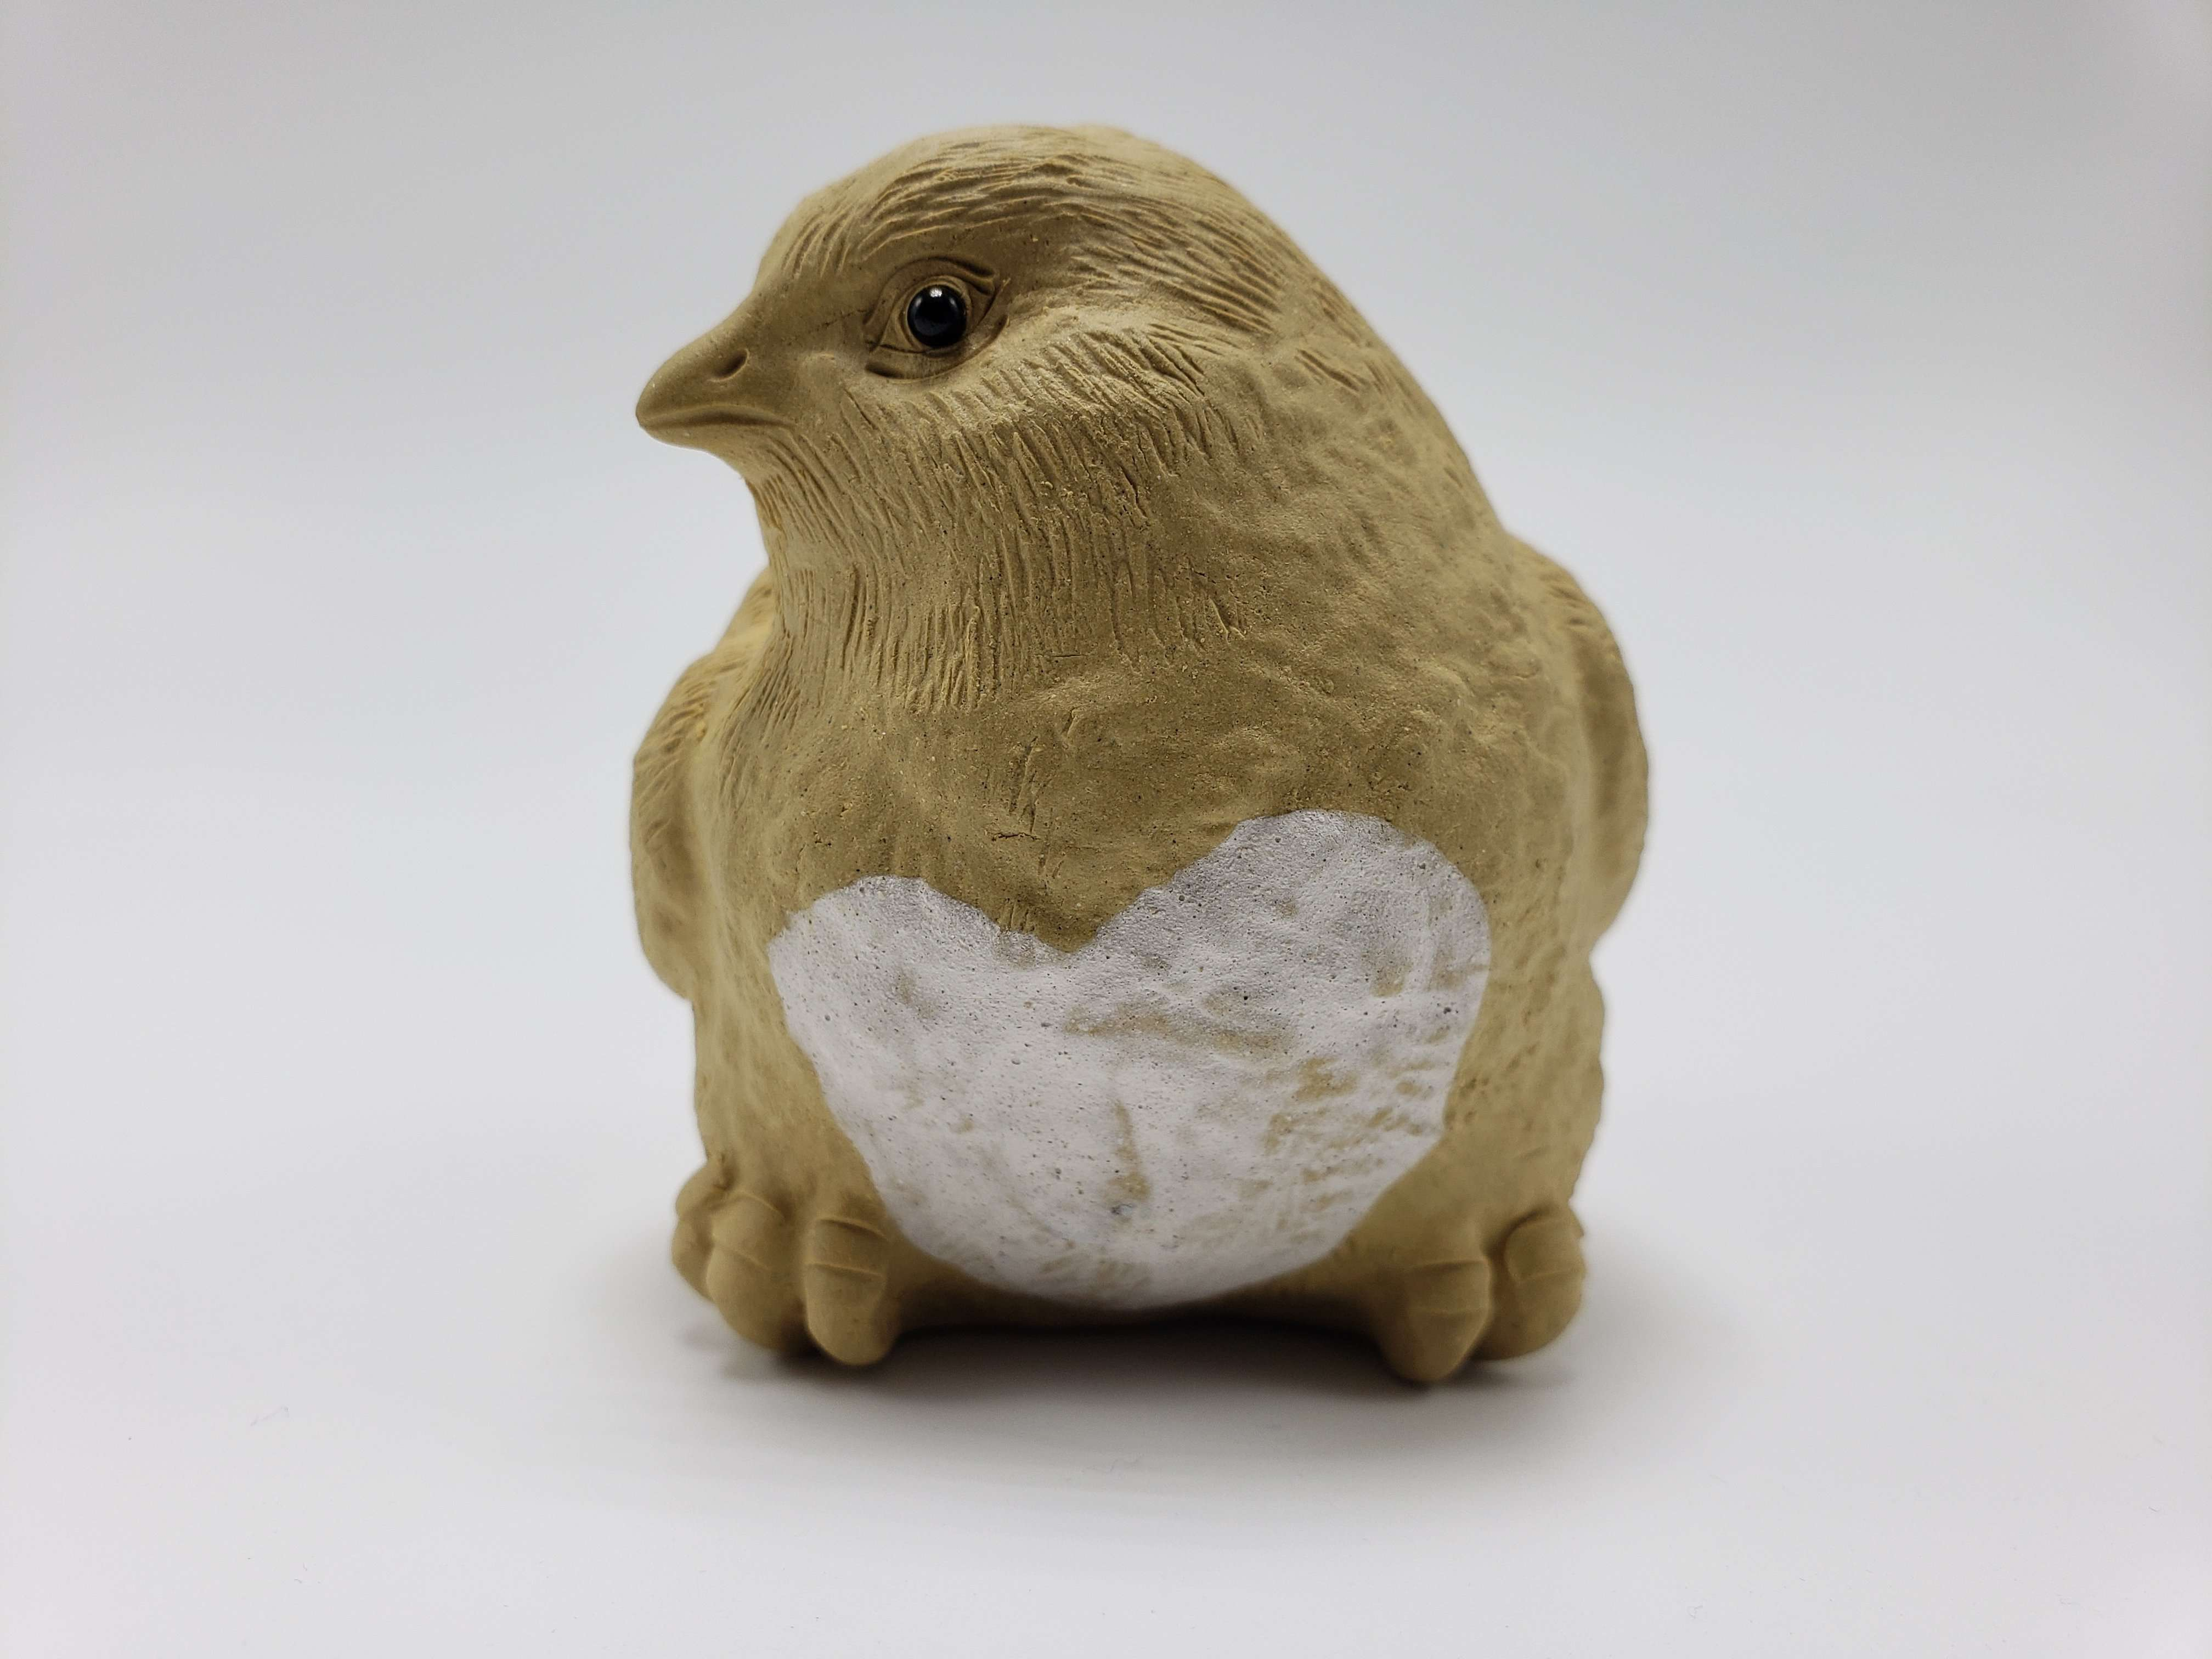 Baby Chick Clay Statue (Facing Right Shoulder) Accessories Teshuah Tea Company